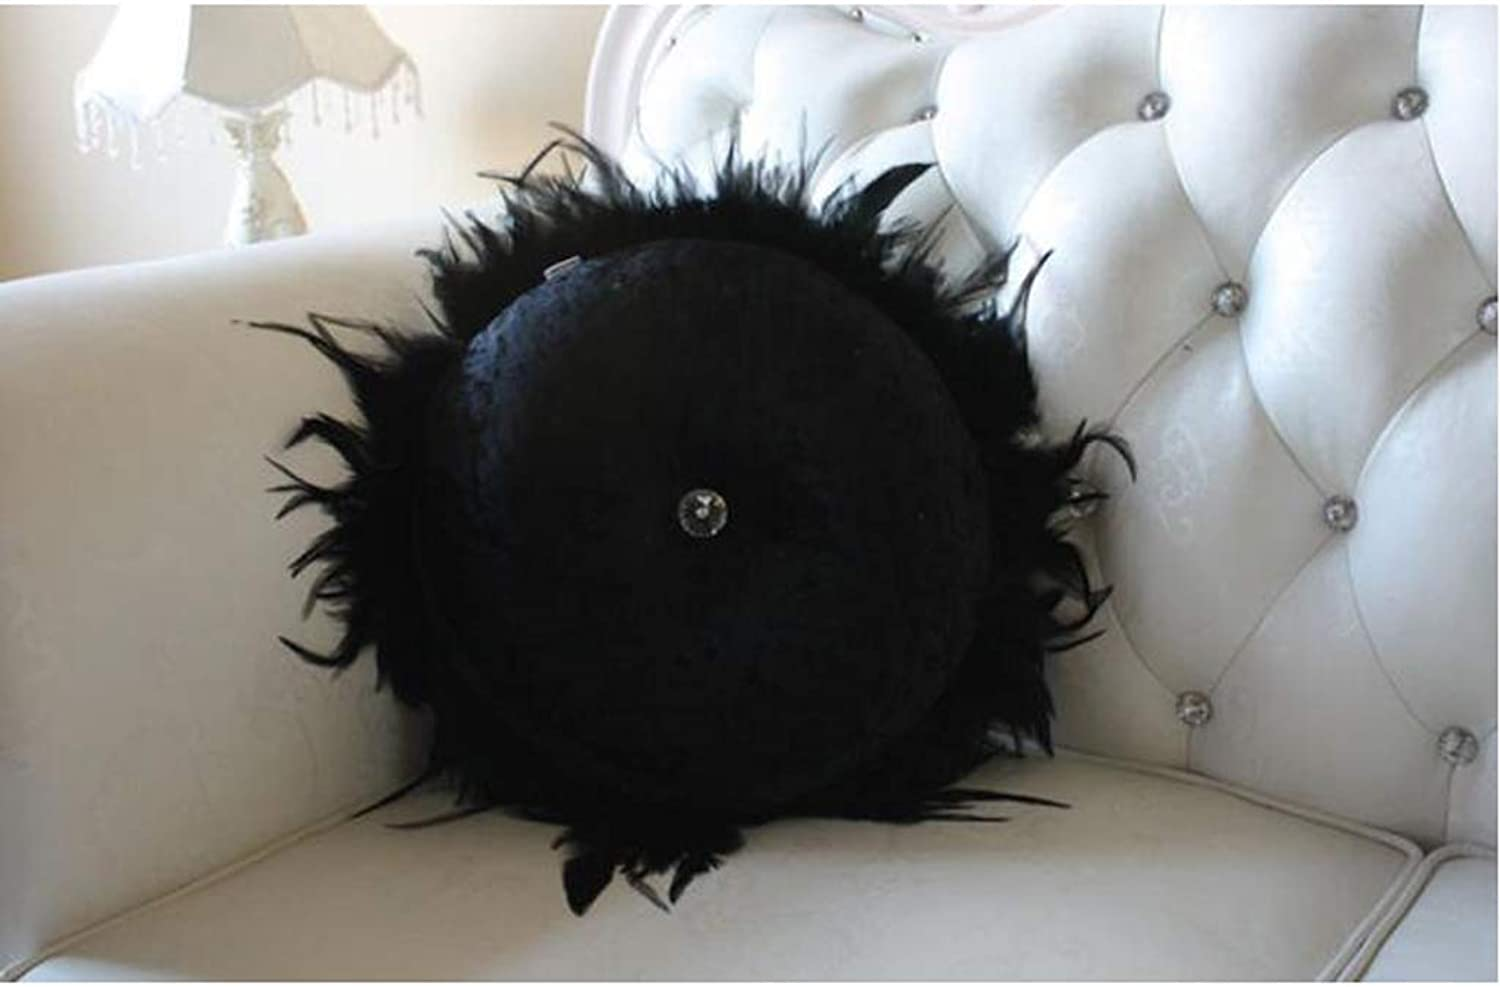 QYSZYG Pillow Round Feather Diamond Buckle Solid color Sofa Pillow Home Cushion Beautiful and Comfortable, White Black Pillow (color   Black)